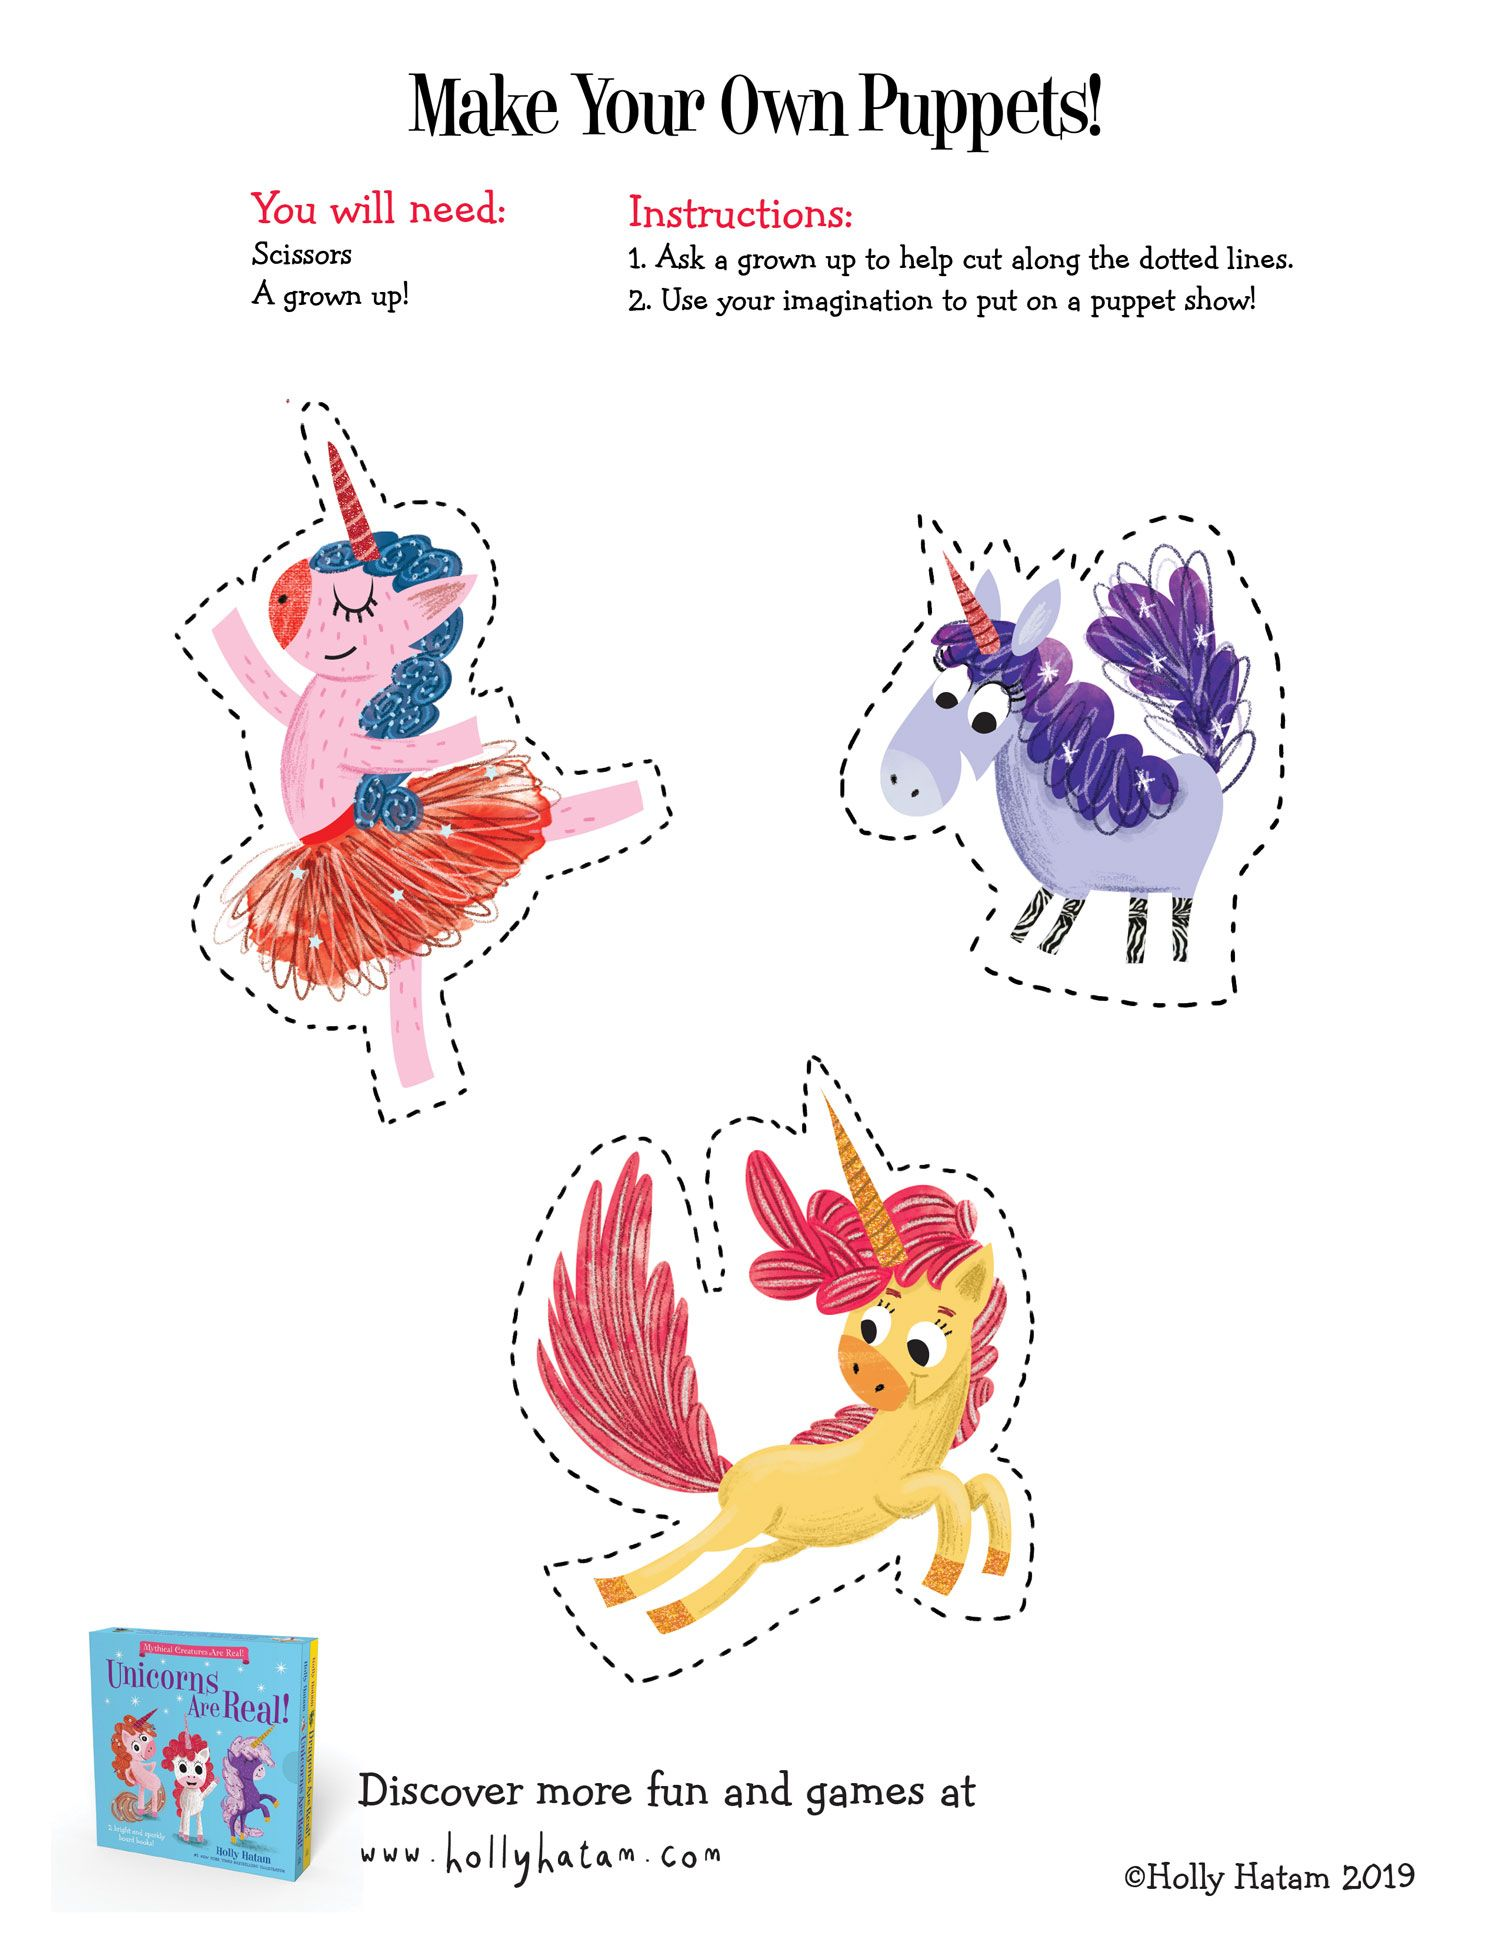 Unicorn Day Is April 9 Make Your Own Unicorn Puppets And Put On A Show Mythical Creatures Real Unicorn Make Your Own